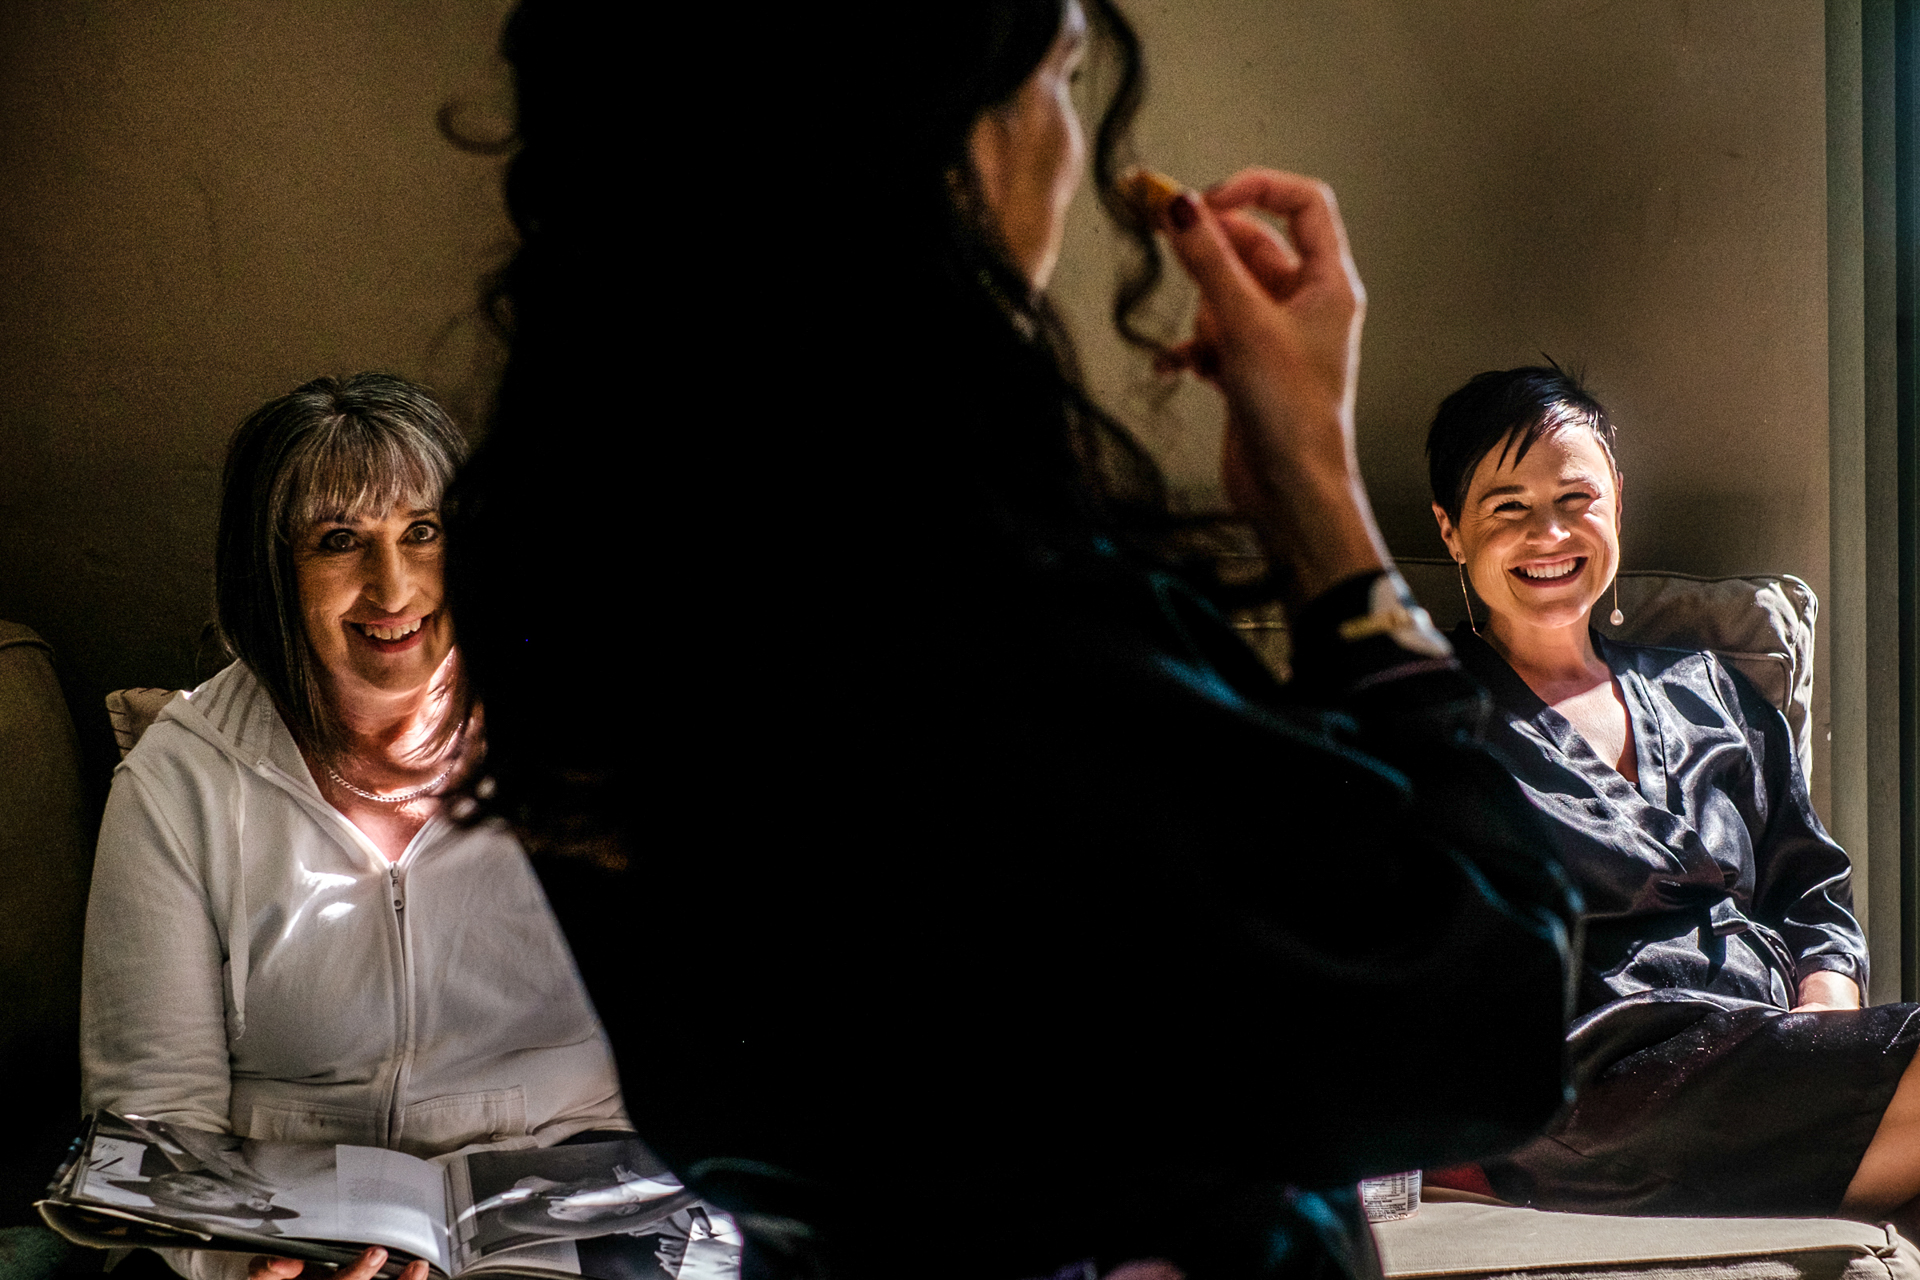 Gelukkie Elopement at Paternoster, South Africa Ceremony Photography   The mother of the bride and bridesmaids reacts